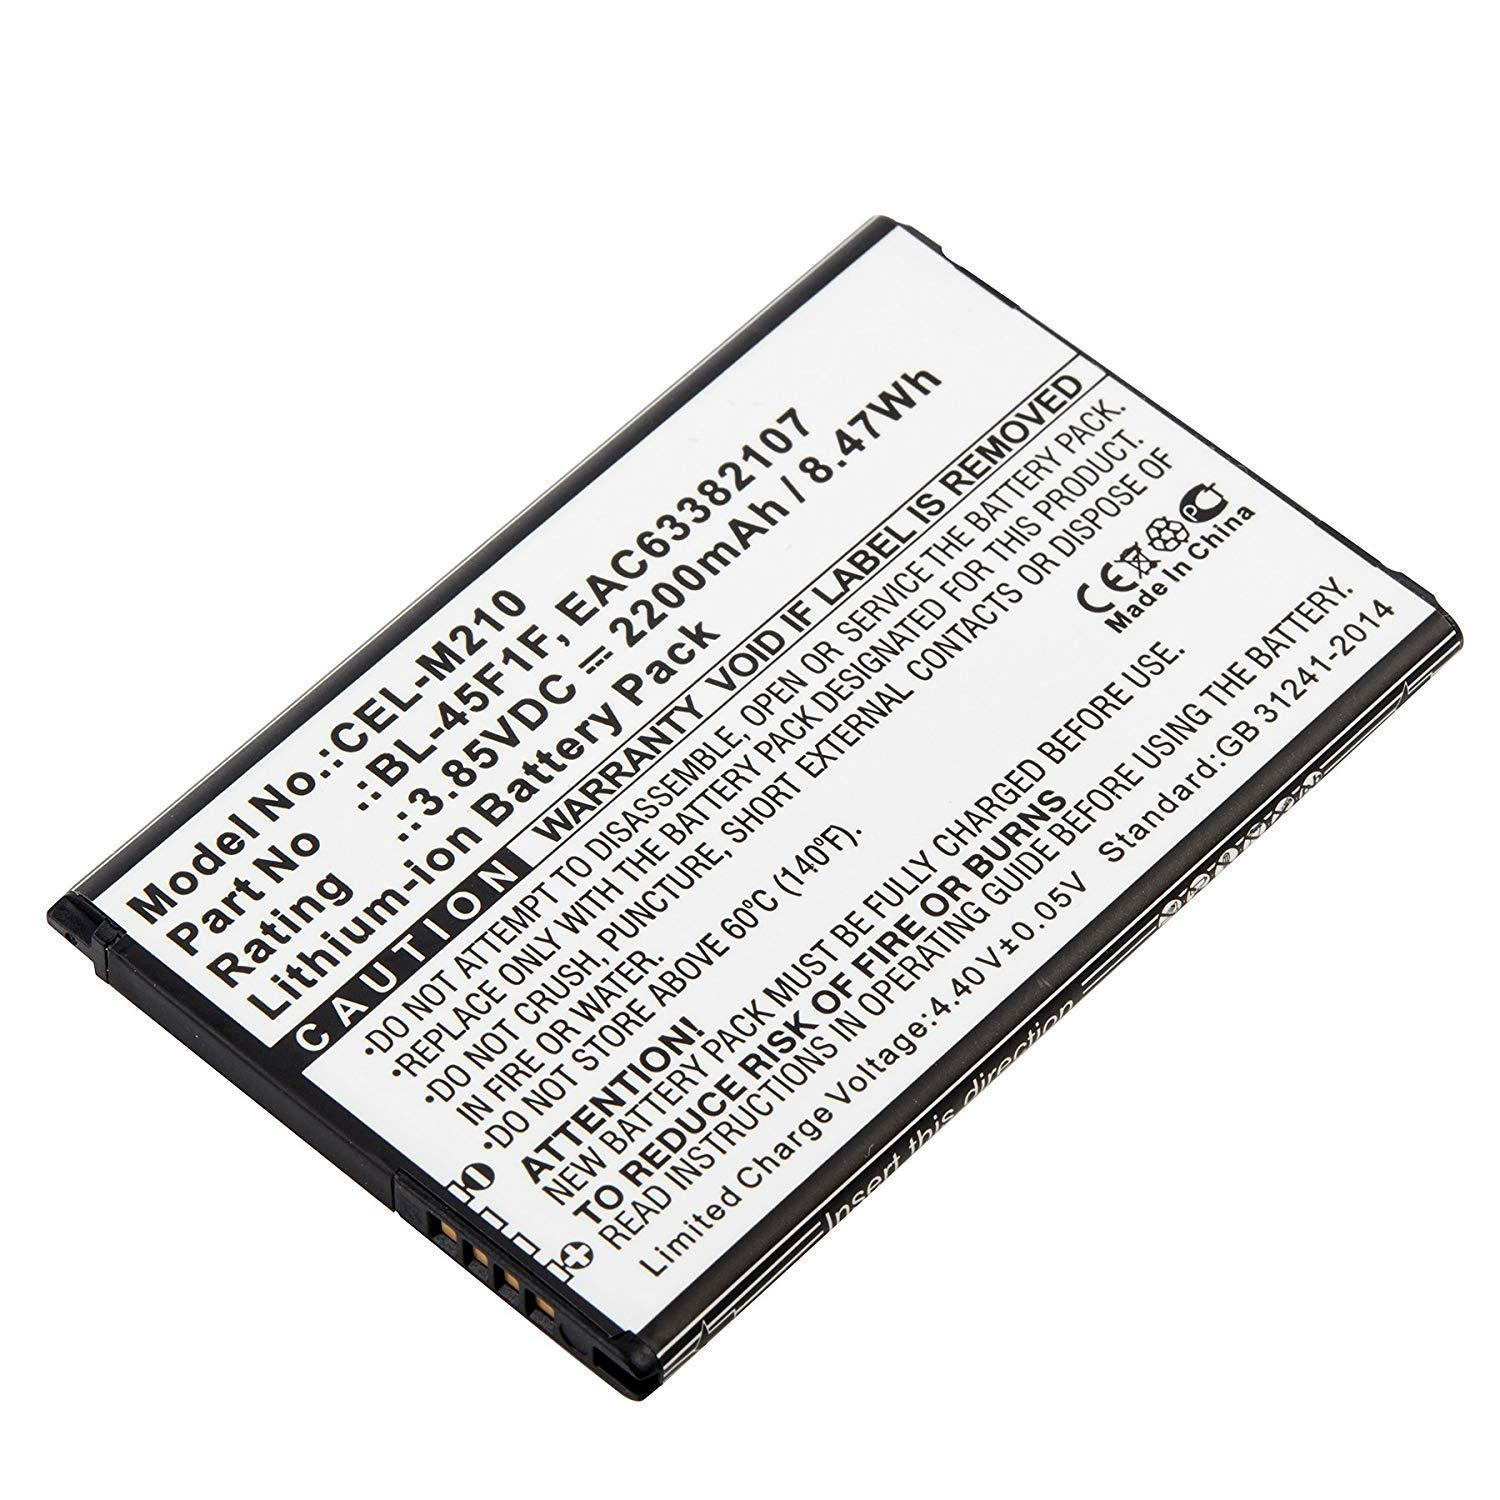 Cellphone Replacement Battery for LG - L58VL